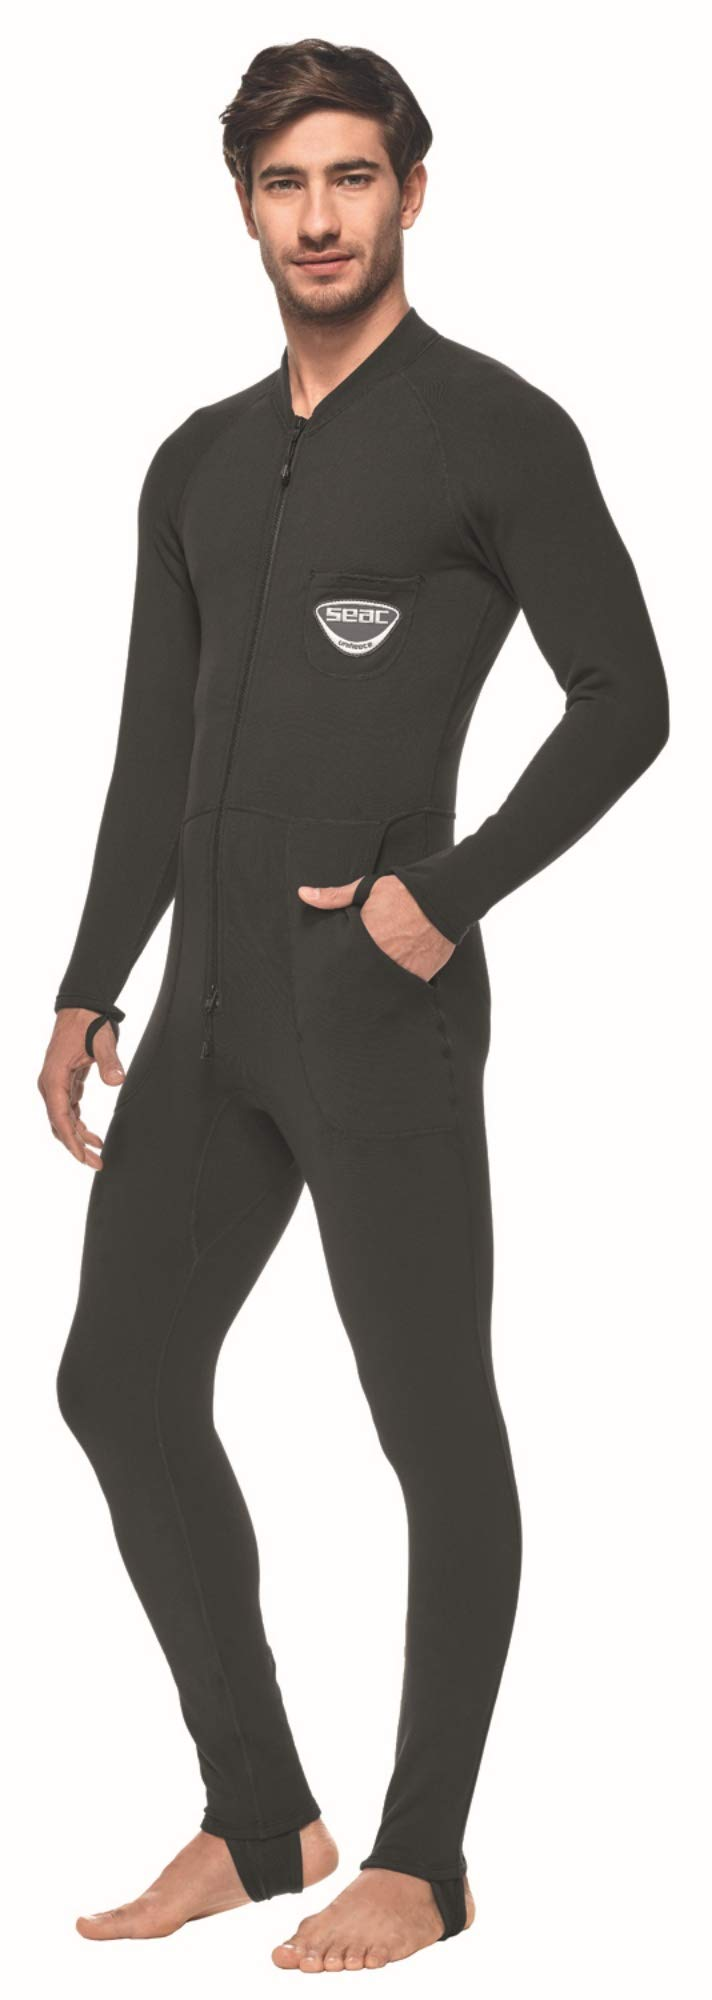 SEAC Unifleece Insulating Undergarment Dry Suit, Black, Medium by SEAC